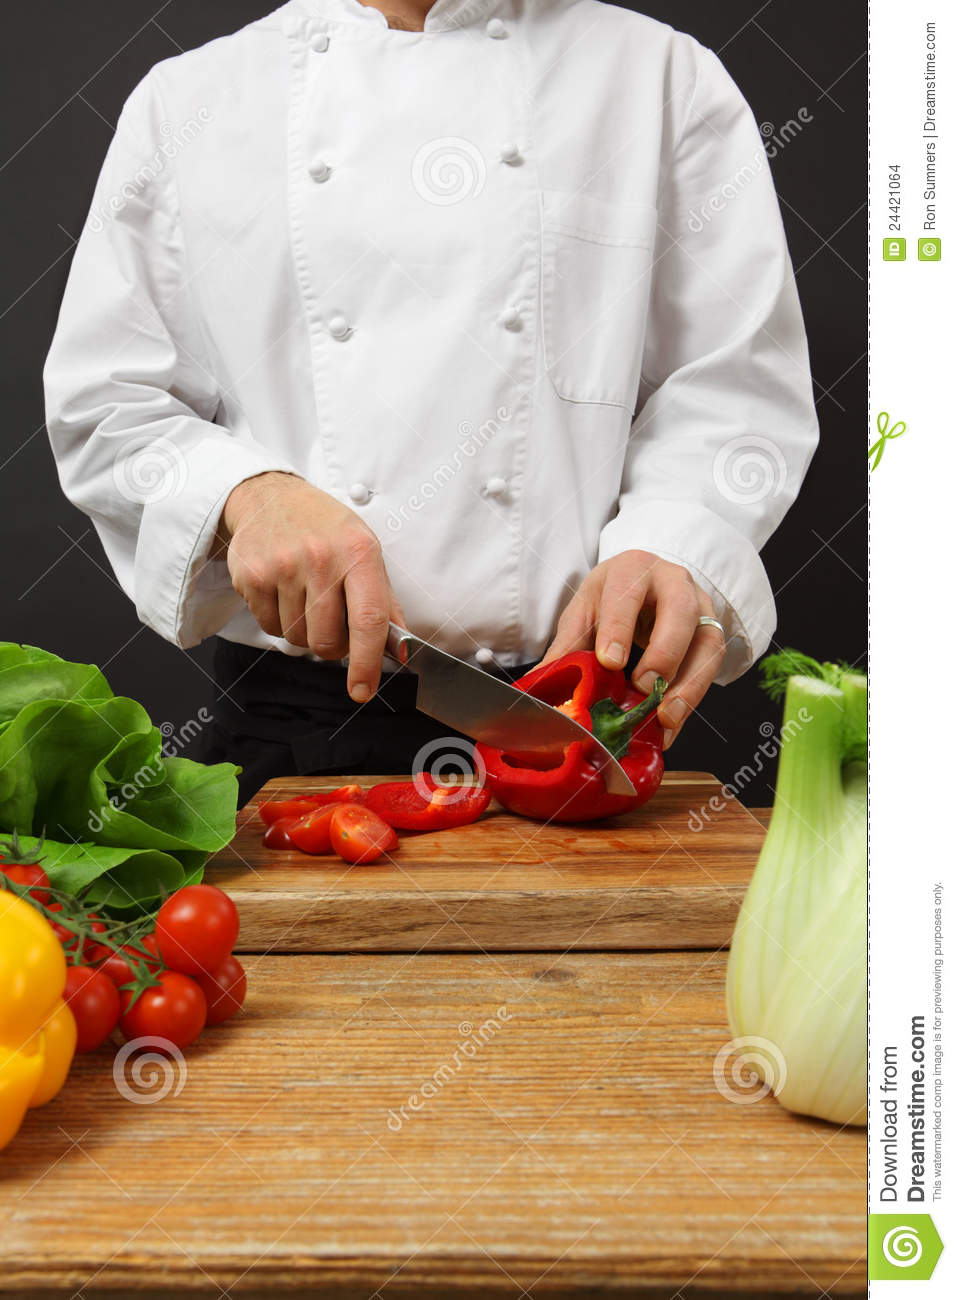 Chef chopping vegetables stock photo. Image of kitchen ...